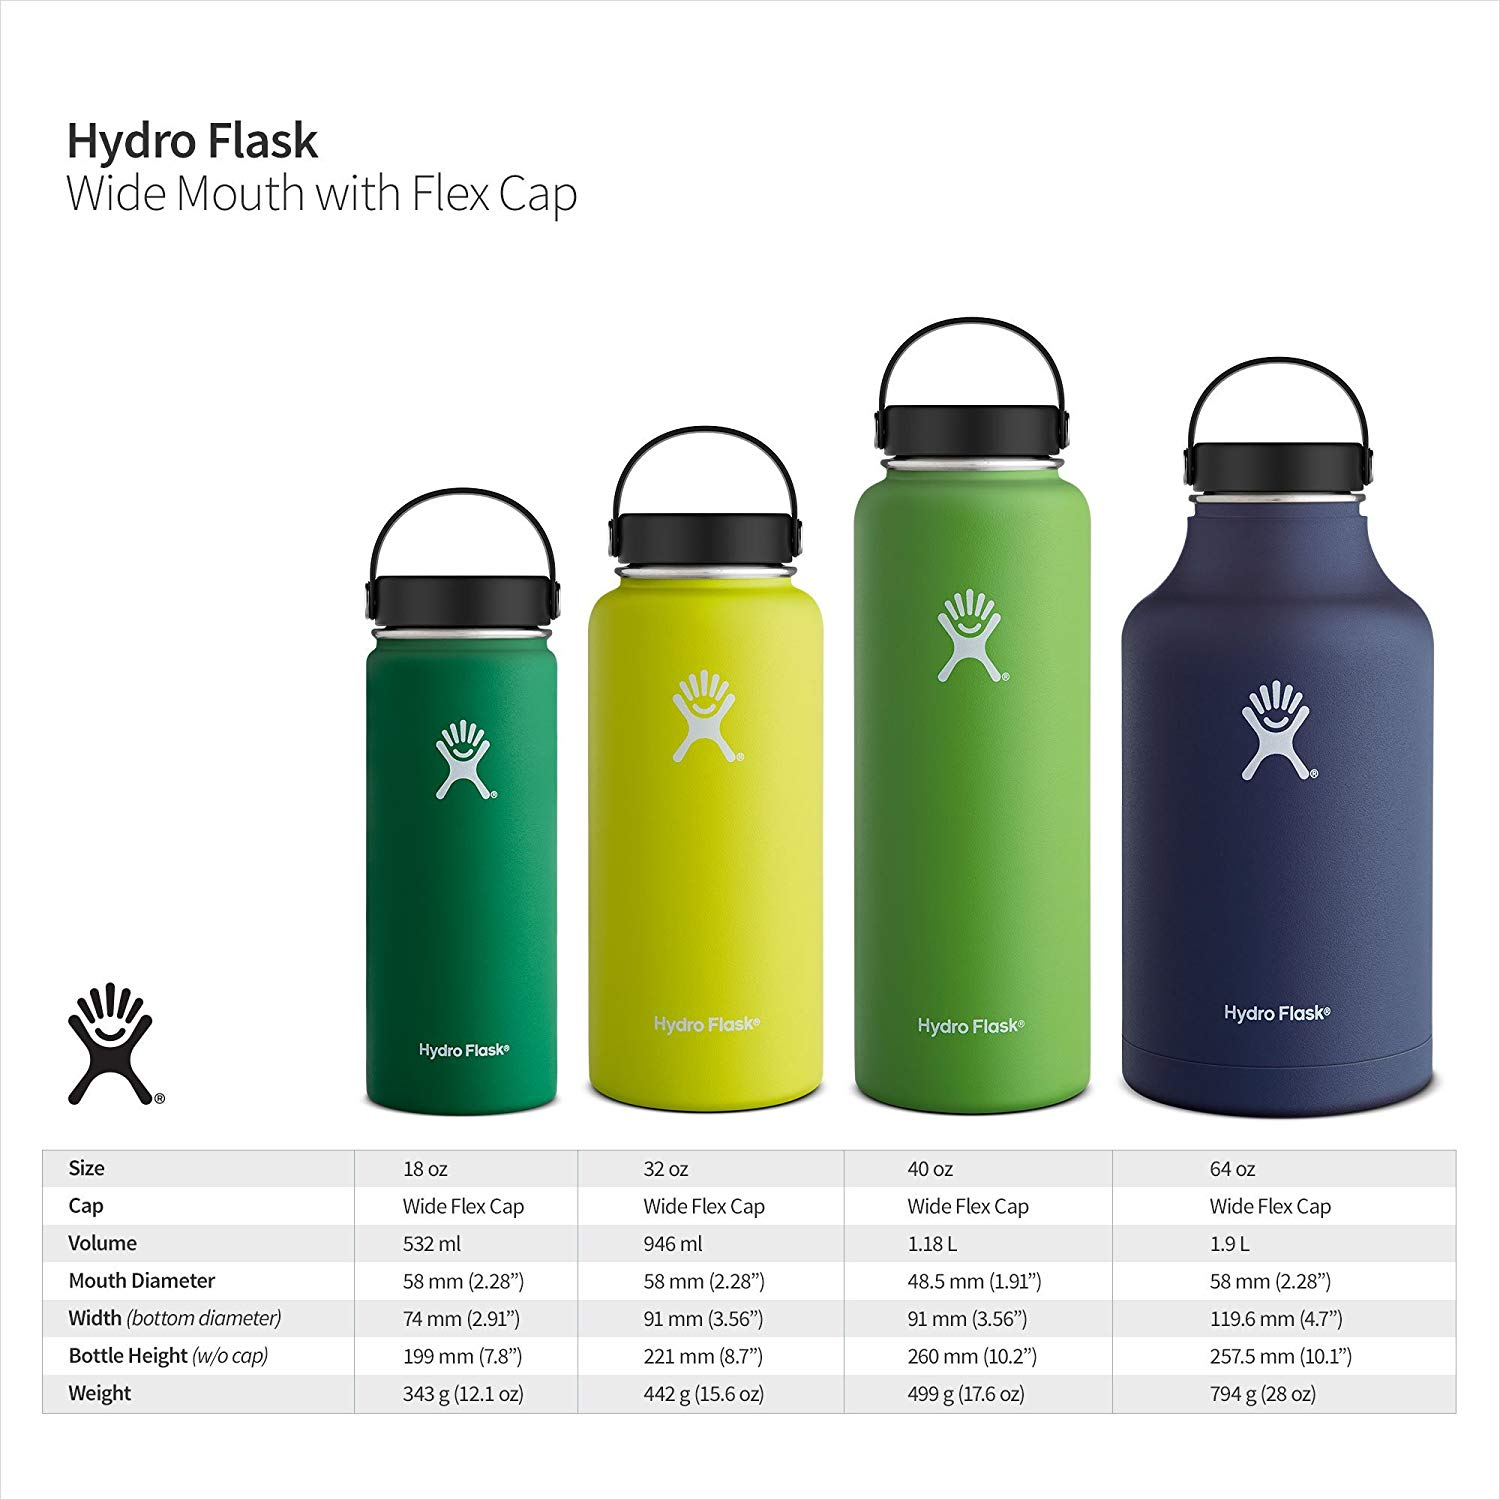 Best Insulated Water Bottle: Hydro Flask vs. Yeti